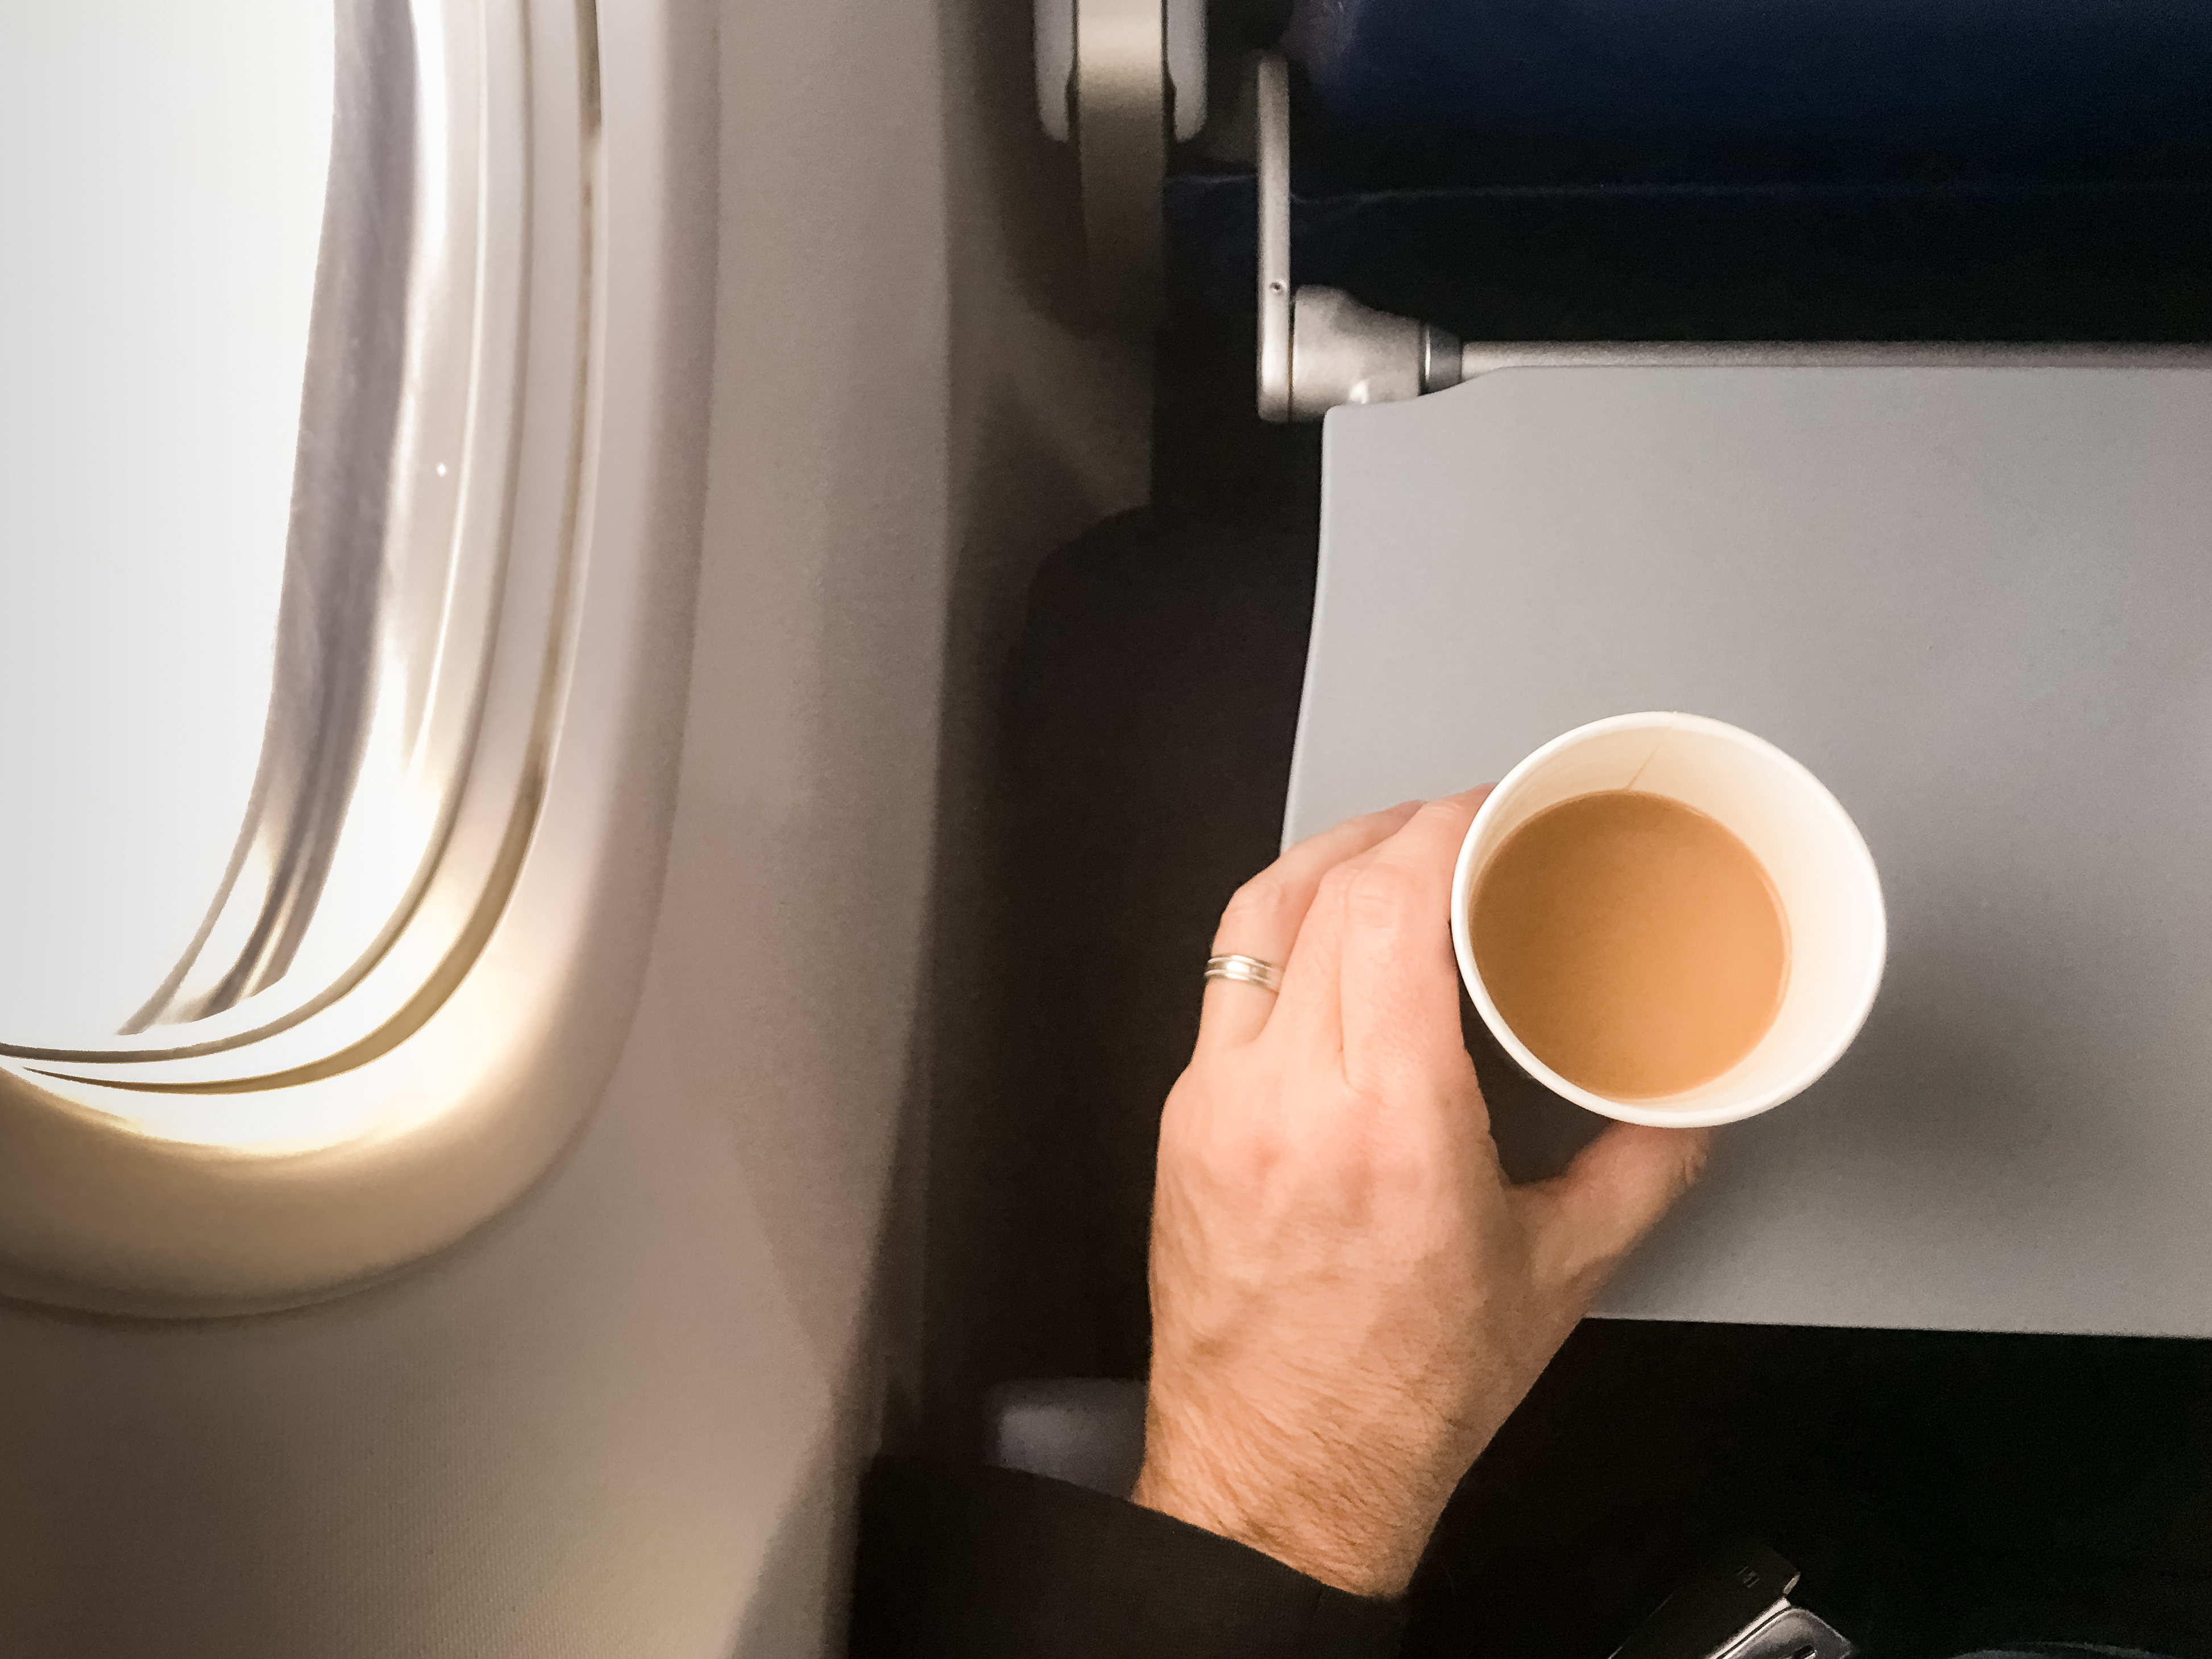 Male passenger holding a cup of coffee in aircraft